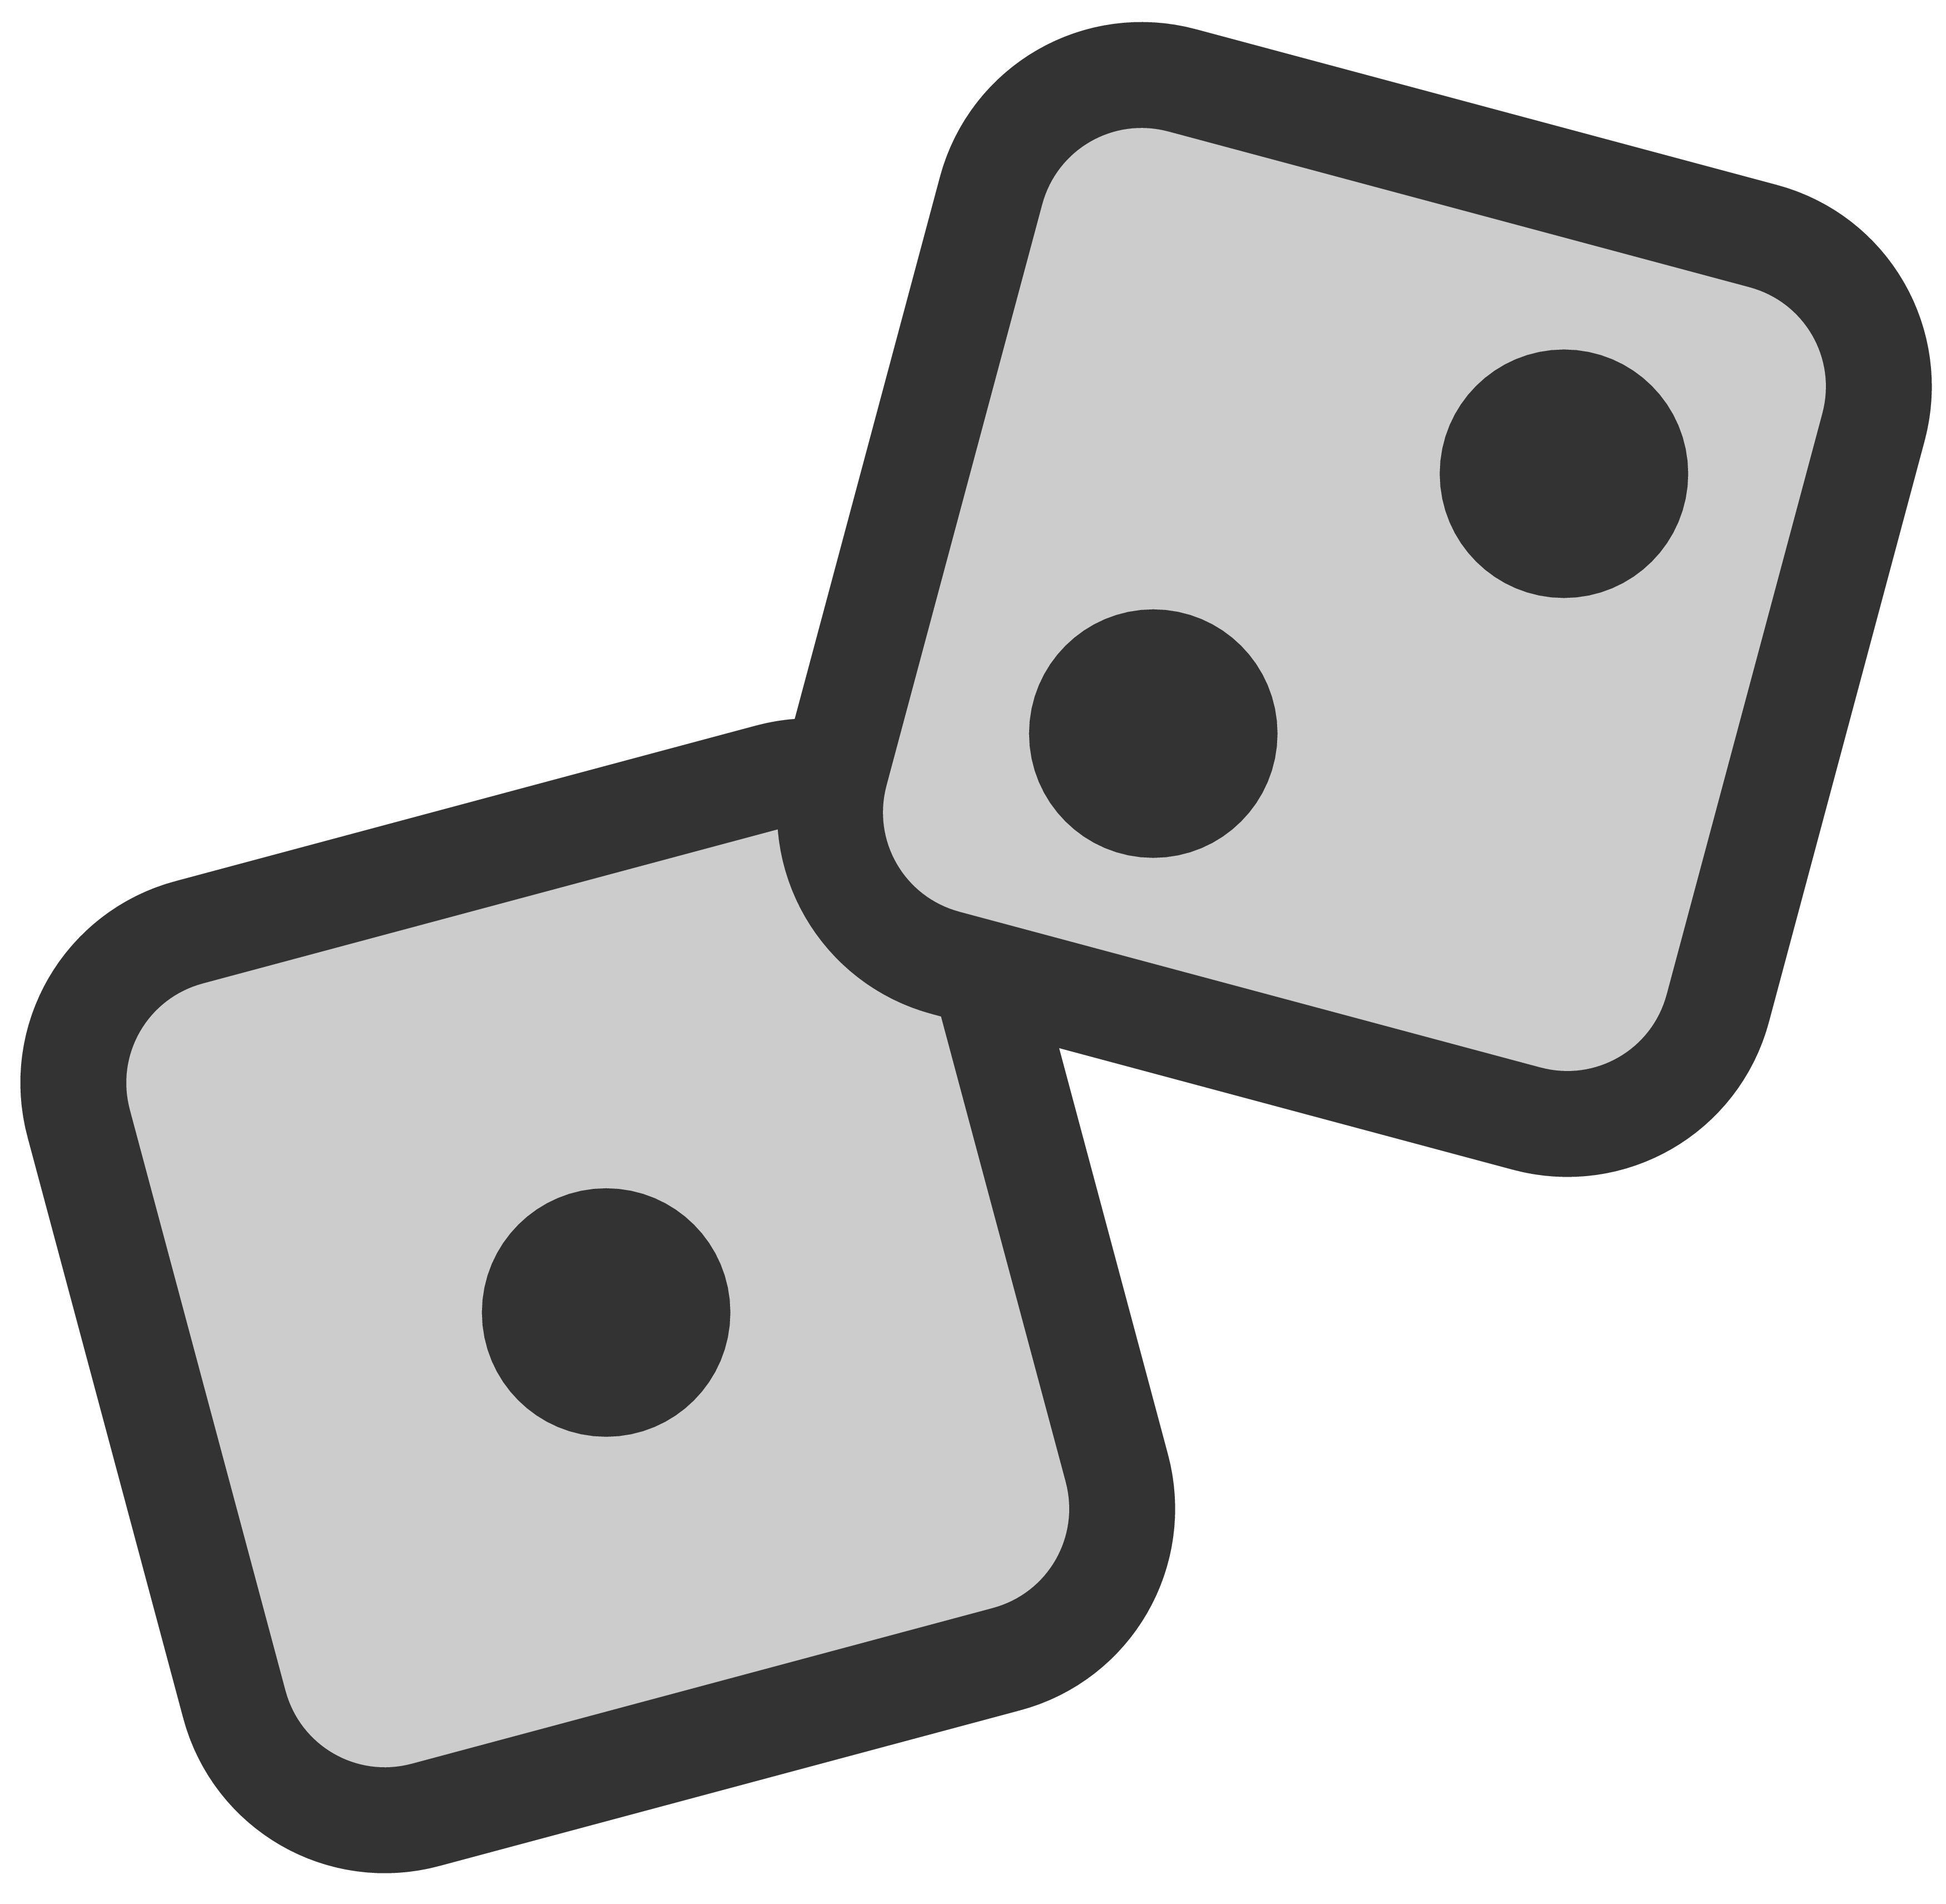 Dice clipart colored dice. Board game clip arts